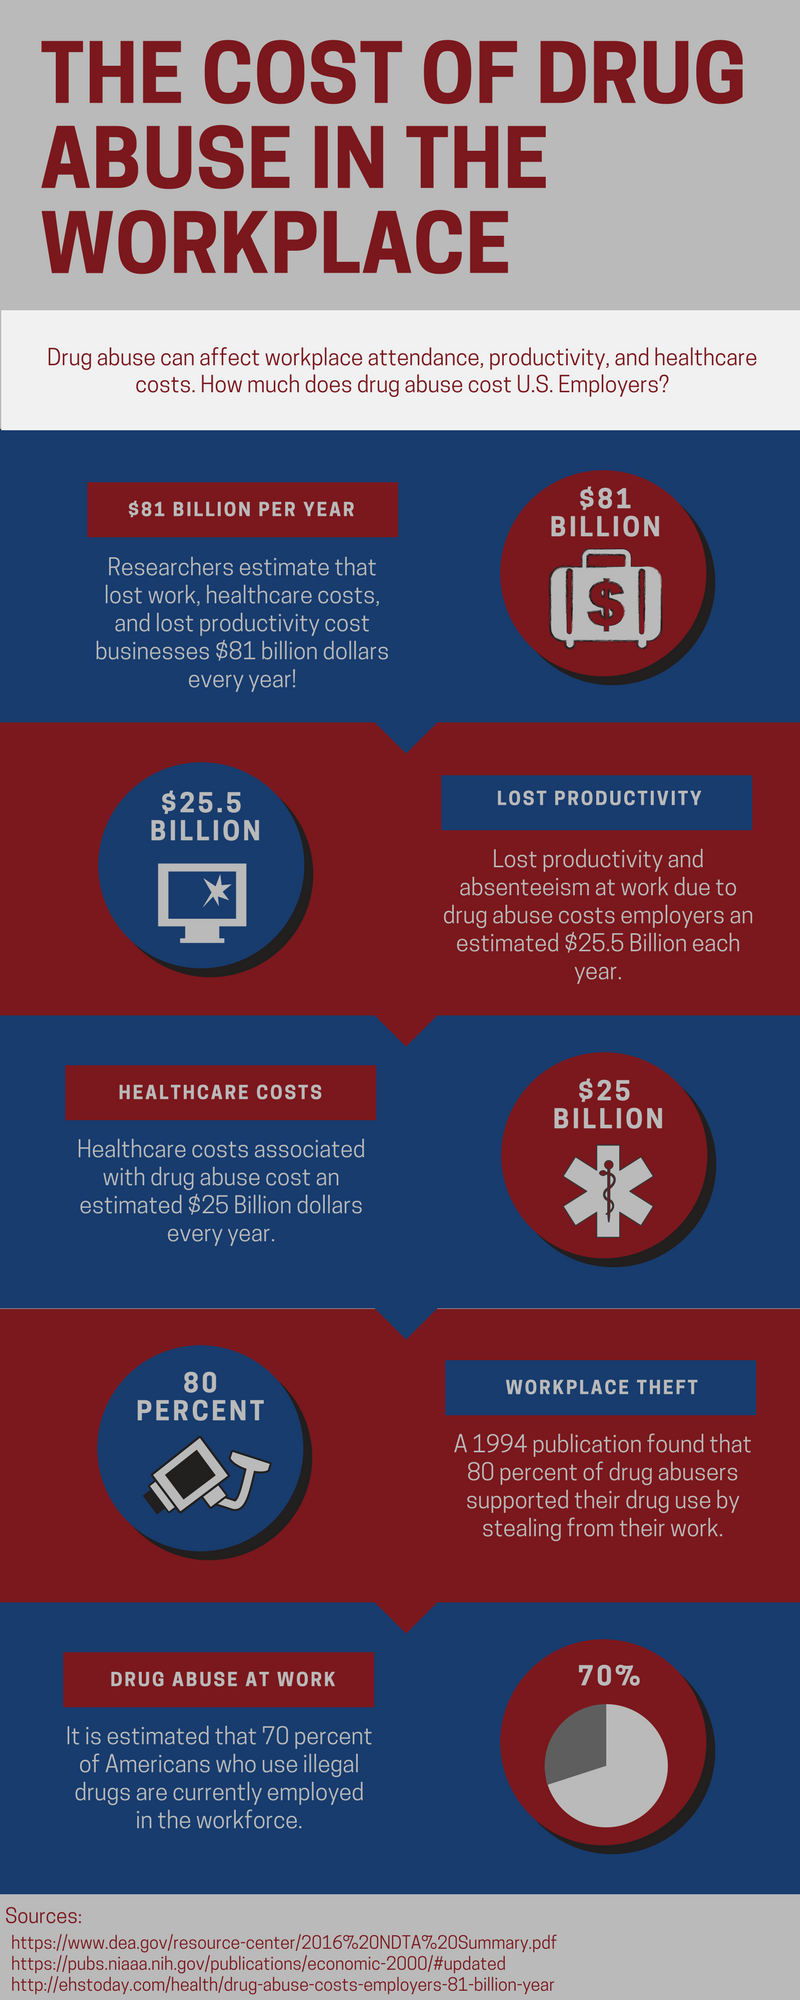 The Cost of Drug Abuse in the Workplace